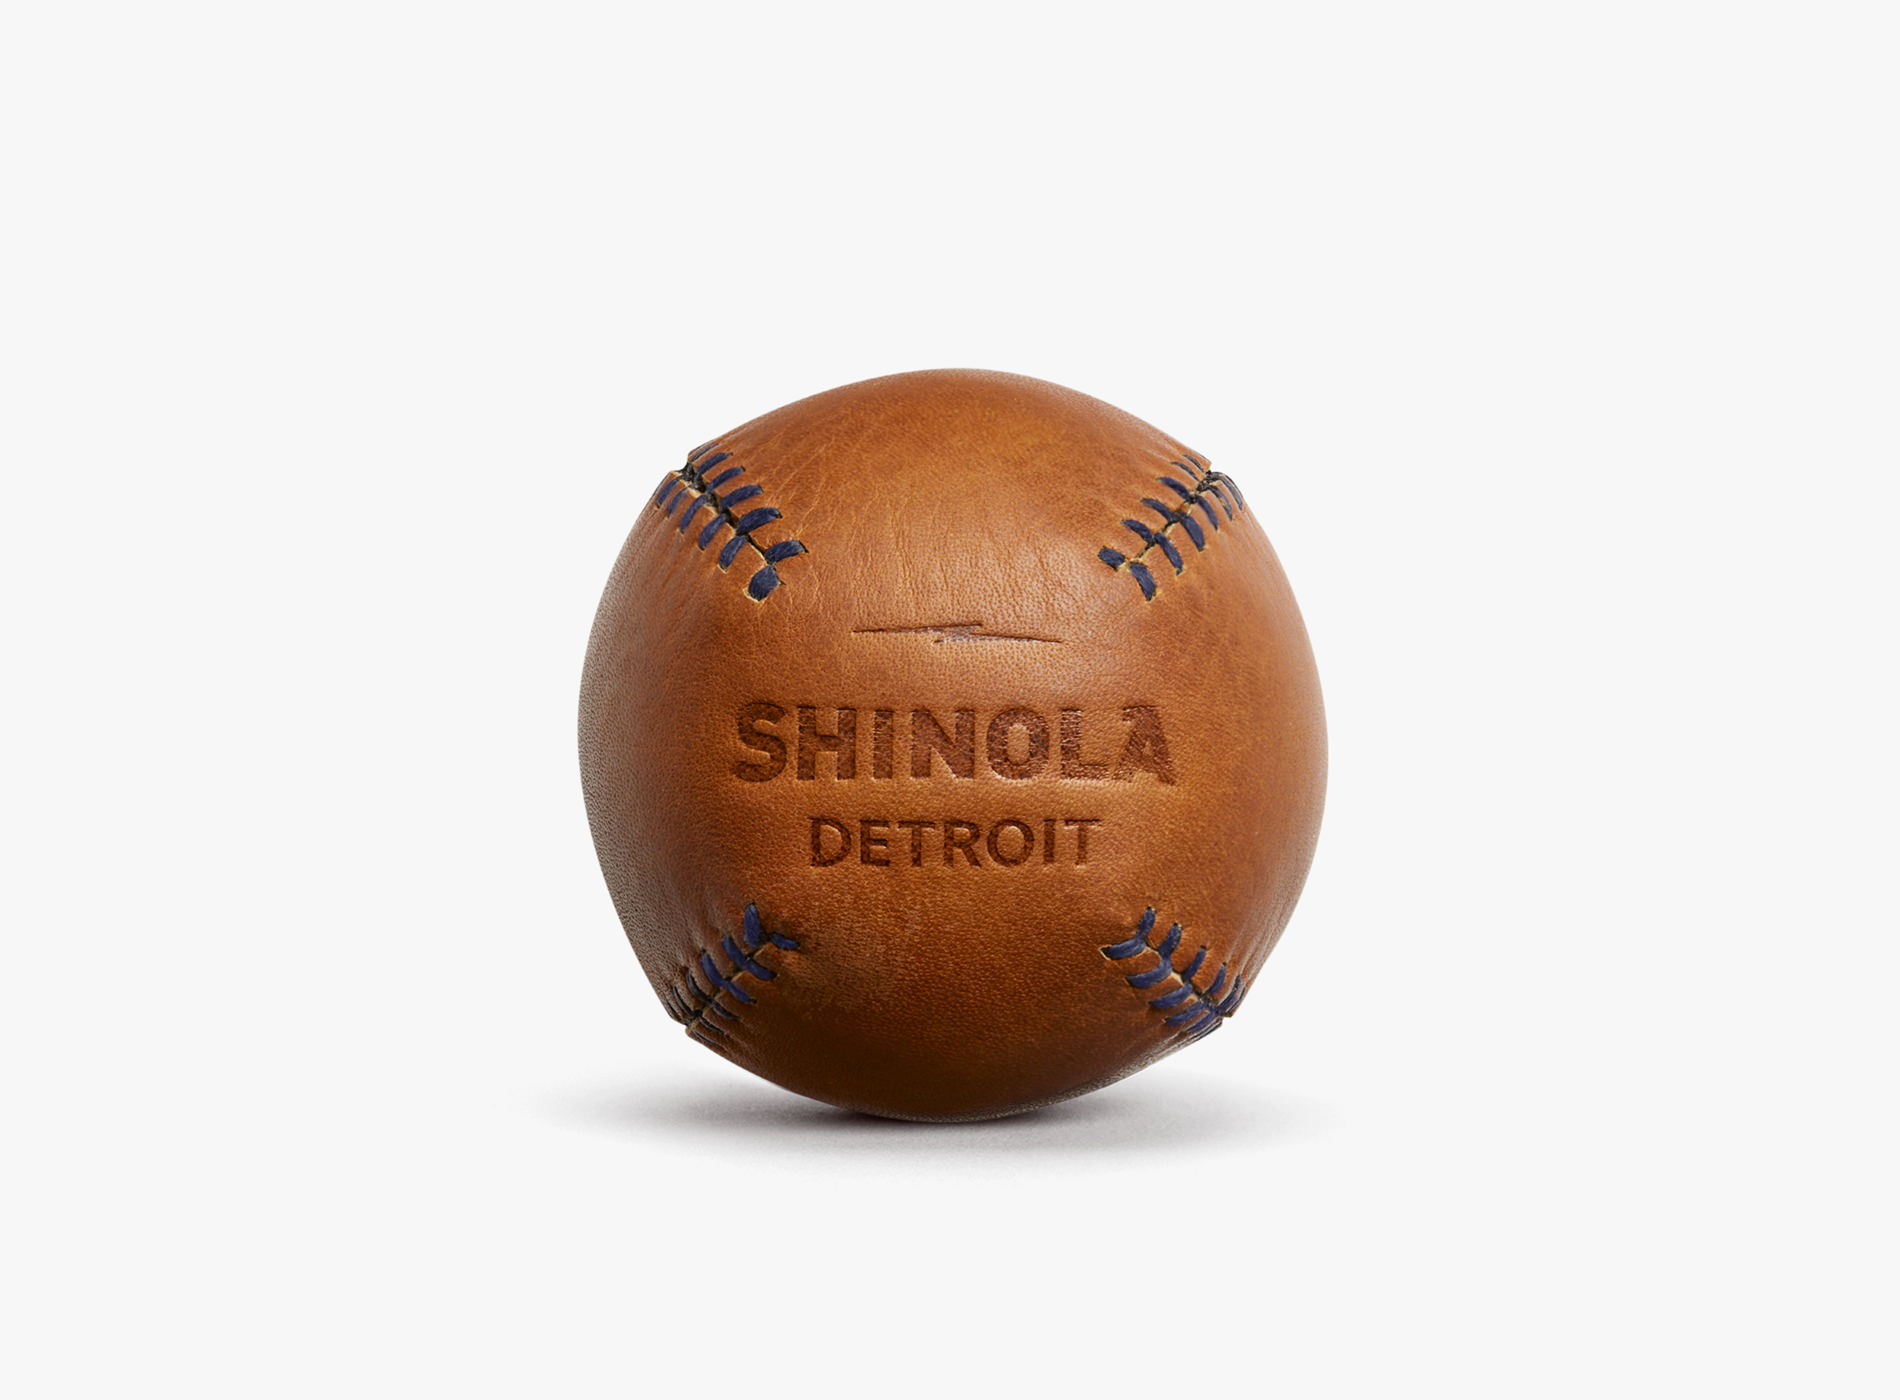 City Guide Detroit Shinola Hotel Boutique Hotel Articles Sport